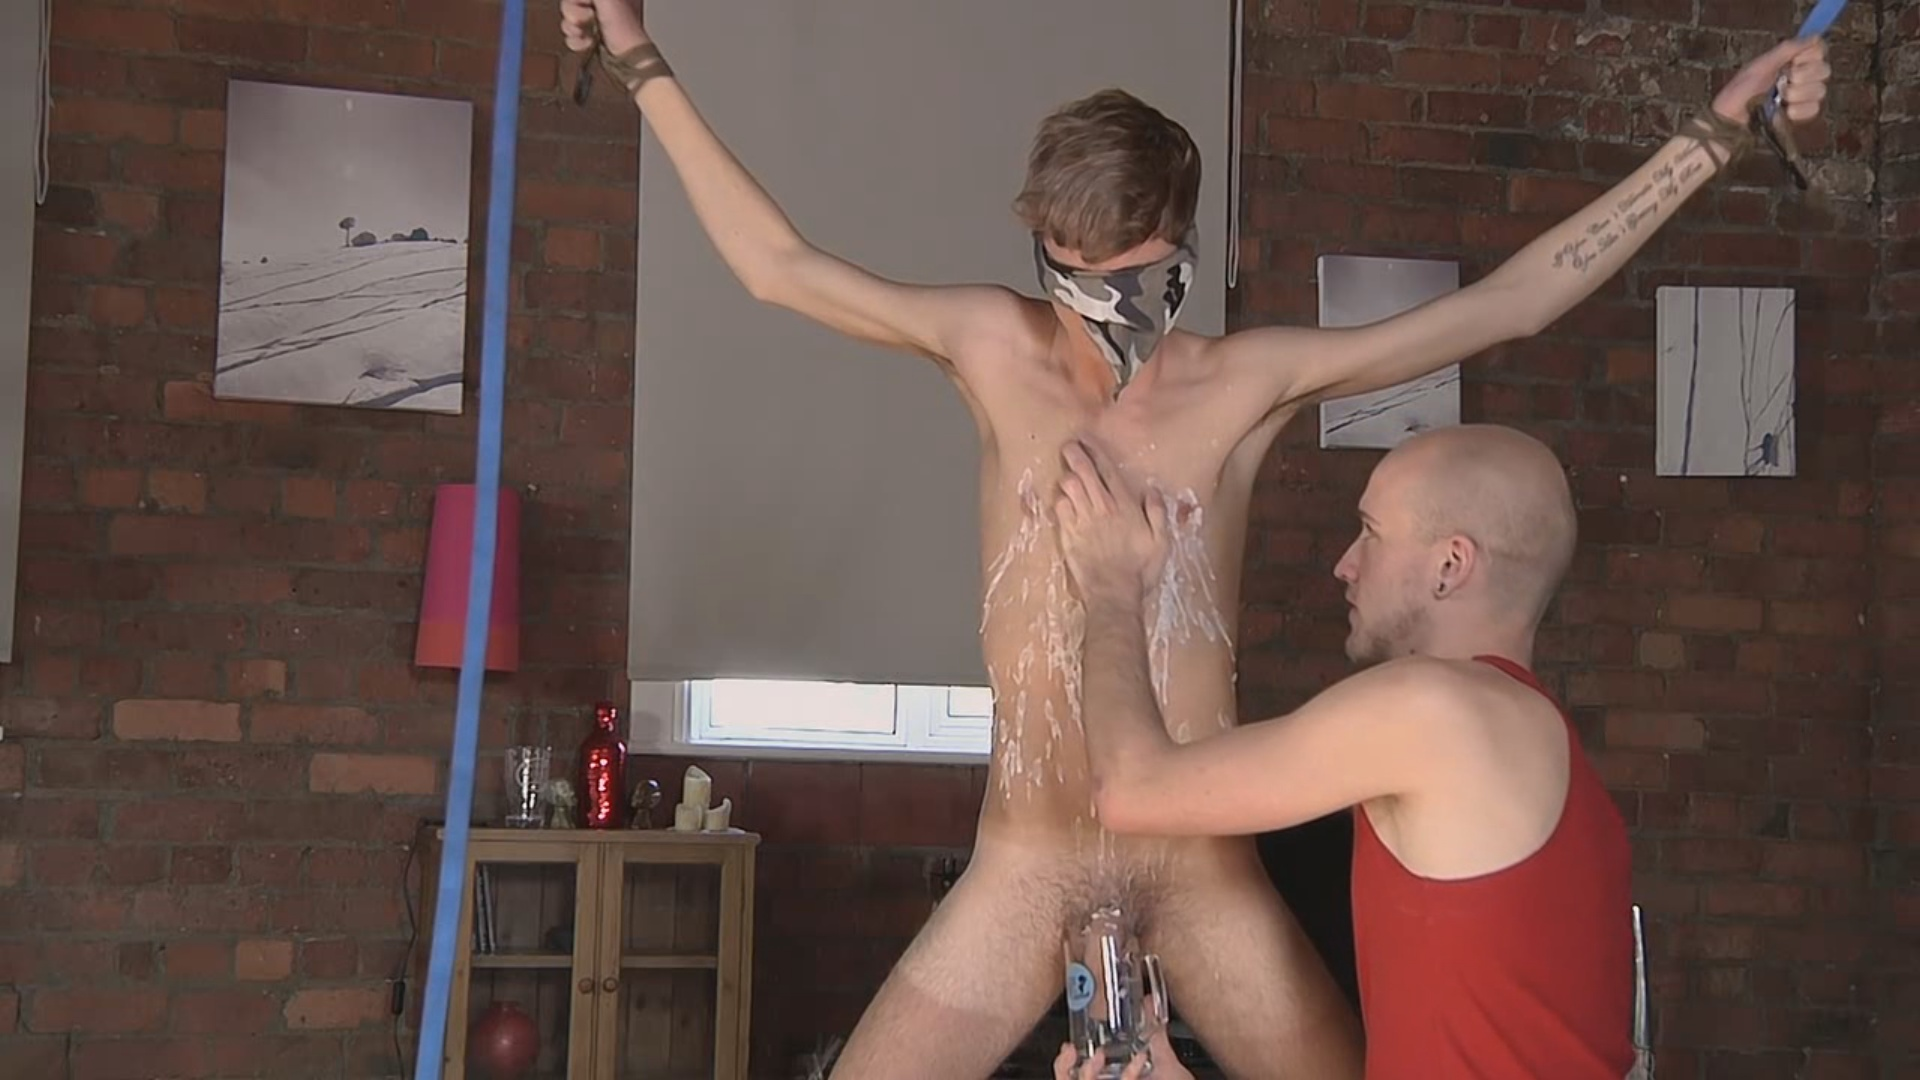 Boynapped 306: Jacob Daniels Gets Waxed And Sucked Off Xvideo gay